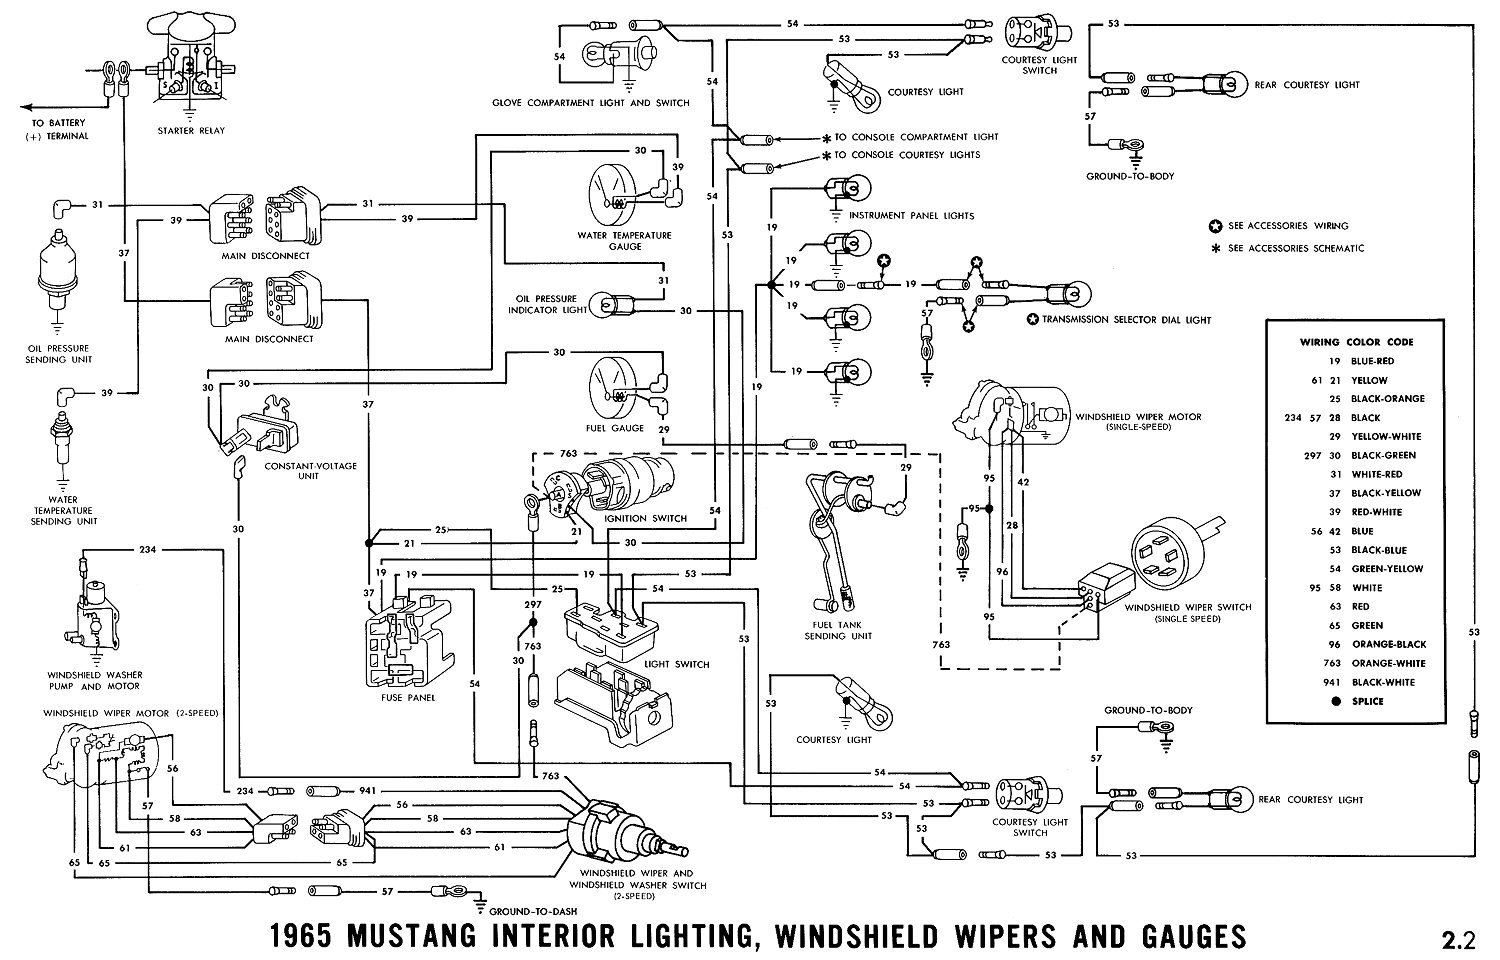 66 One speed with washer pump issues. | Ford Mustang Forum | Windshield Wiper Wiring Diagram For 1966 Ford Mustang |  | All Ford Mustangs